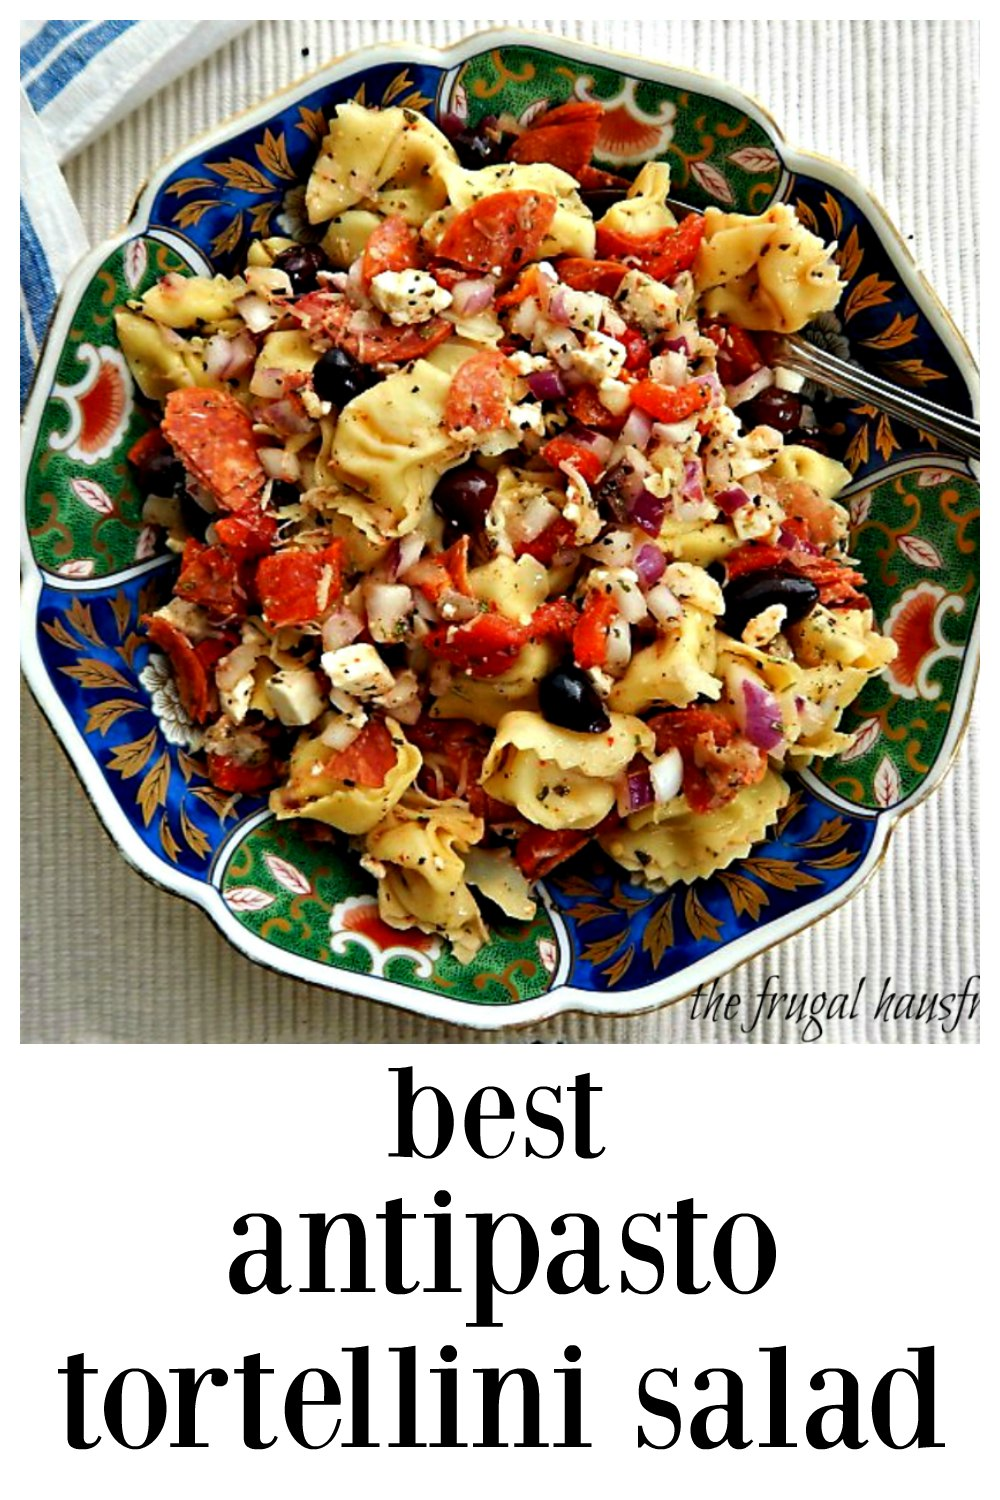 This loaded and amped up Tortellini Antipasto Salad is the one you'll want to bring to any party! There area lot of suggestions to make the BEST pasta salad, ever! You'll want to share the recipe - everyone will want it. #PastaSalad #TortelliniPastaSalad #SummerSalads #Tortellini